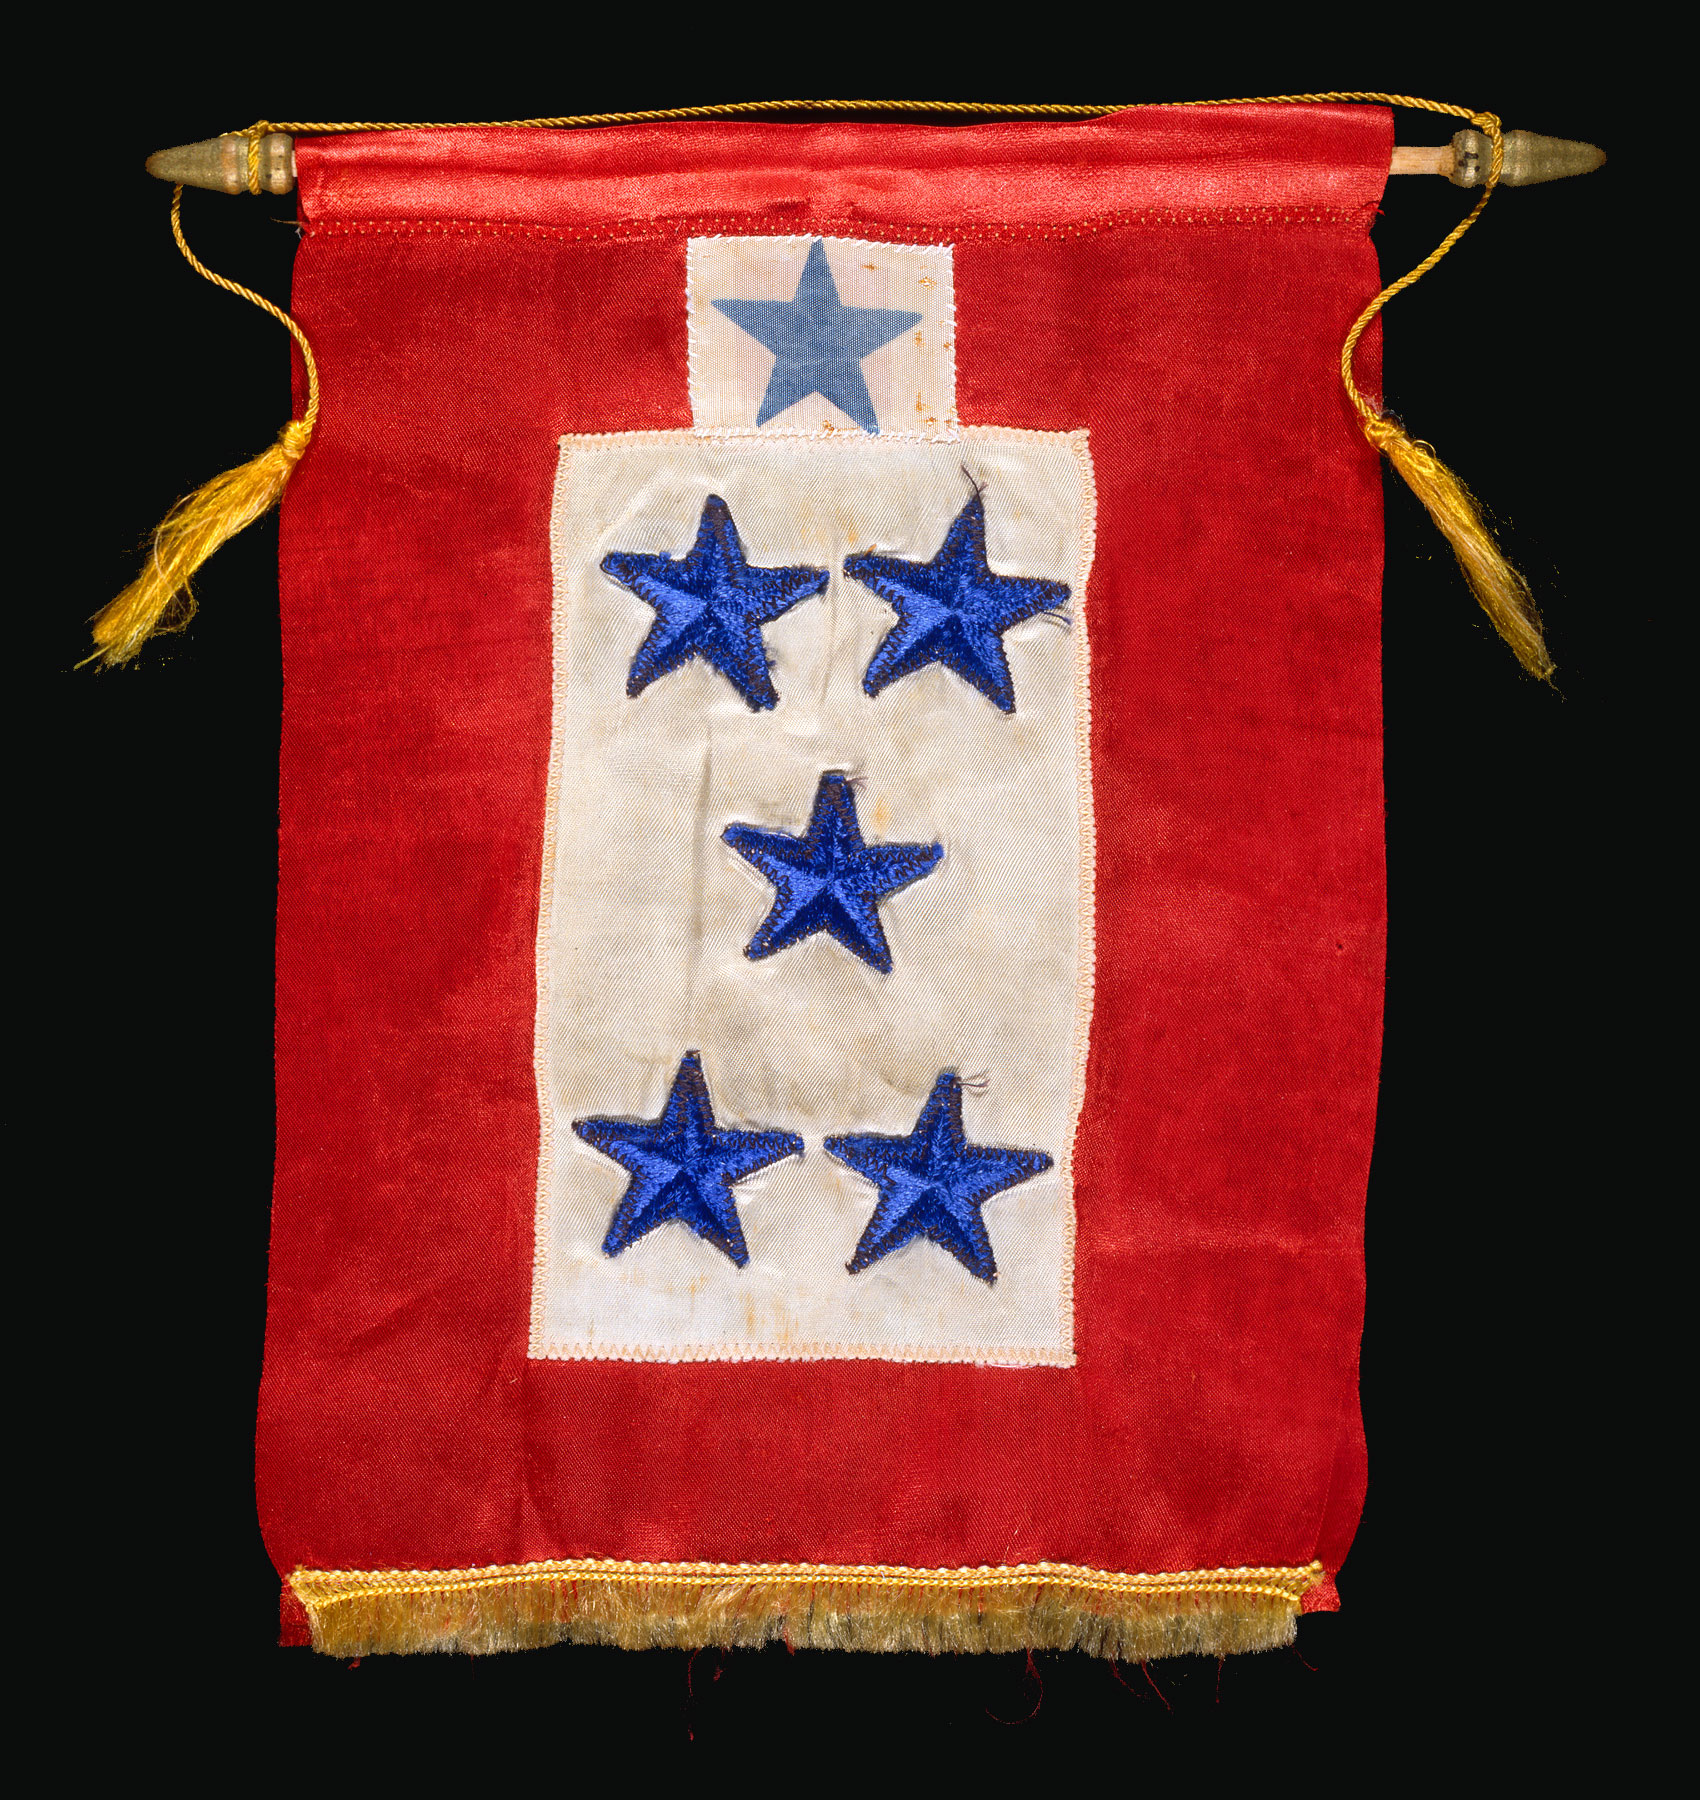 A military banner in military history exhibit at the N.C. Museum of History